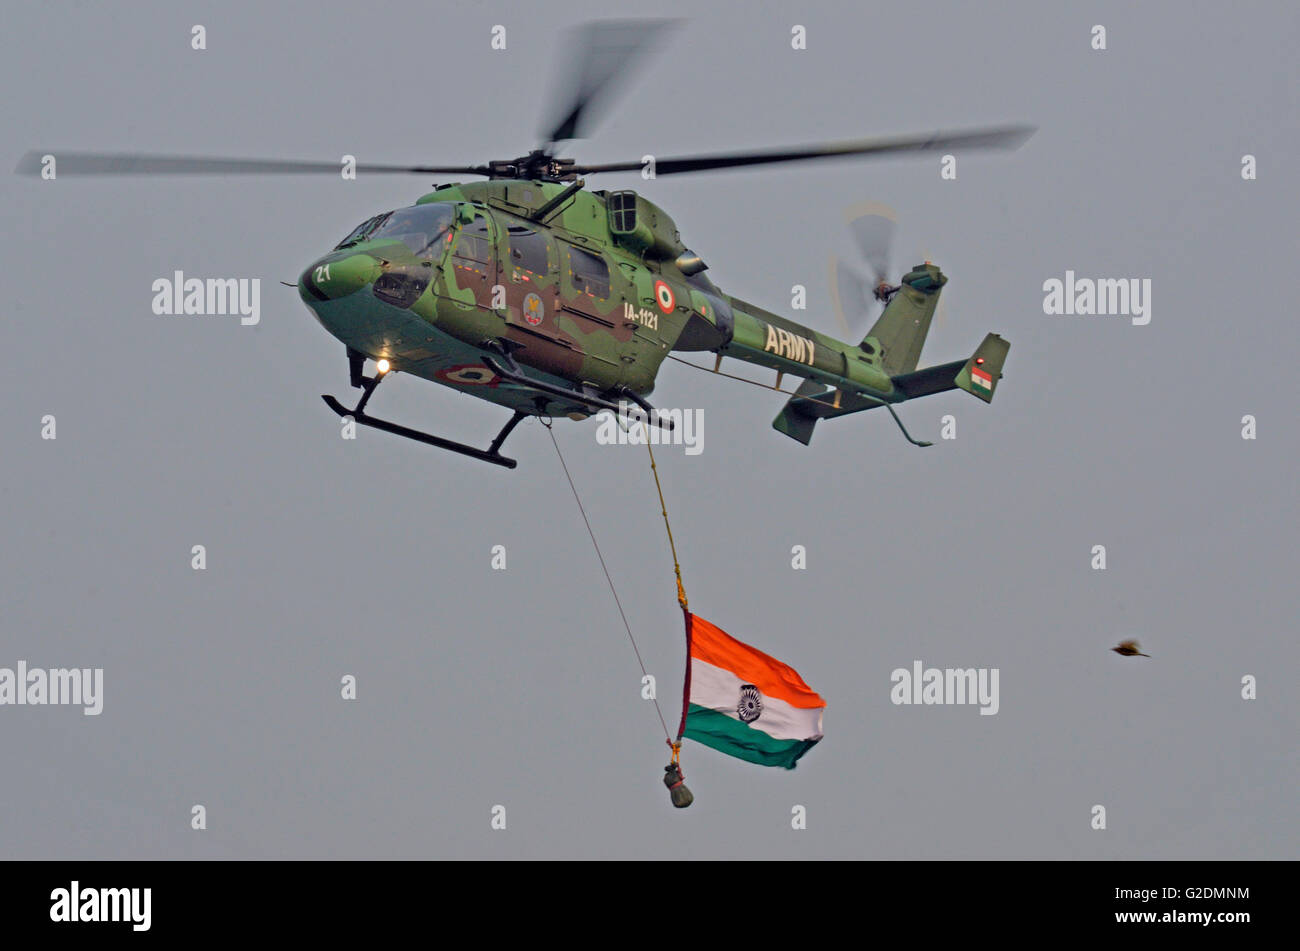 Dhruv - Advanced Light Helicopter, designed and manufactured by Hindustan Aeronautics Limited, flying past on Army - Stock Image